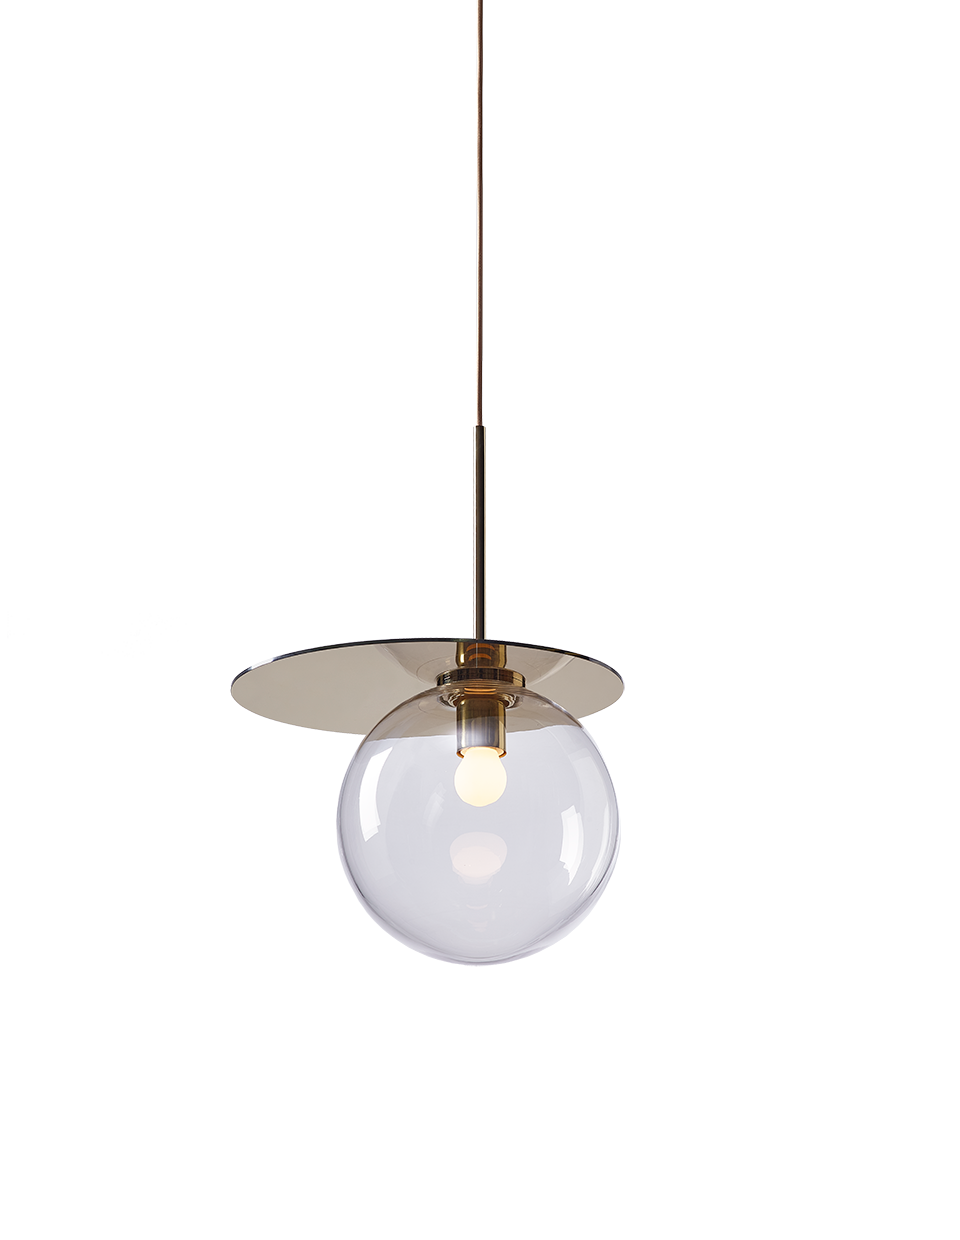 Umbra pendant clear / polished brass